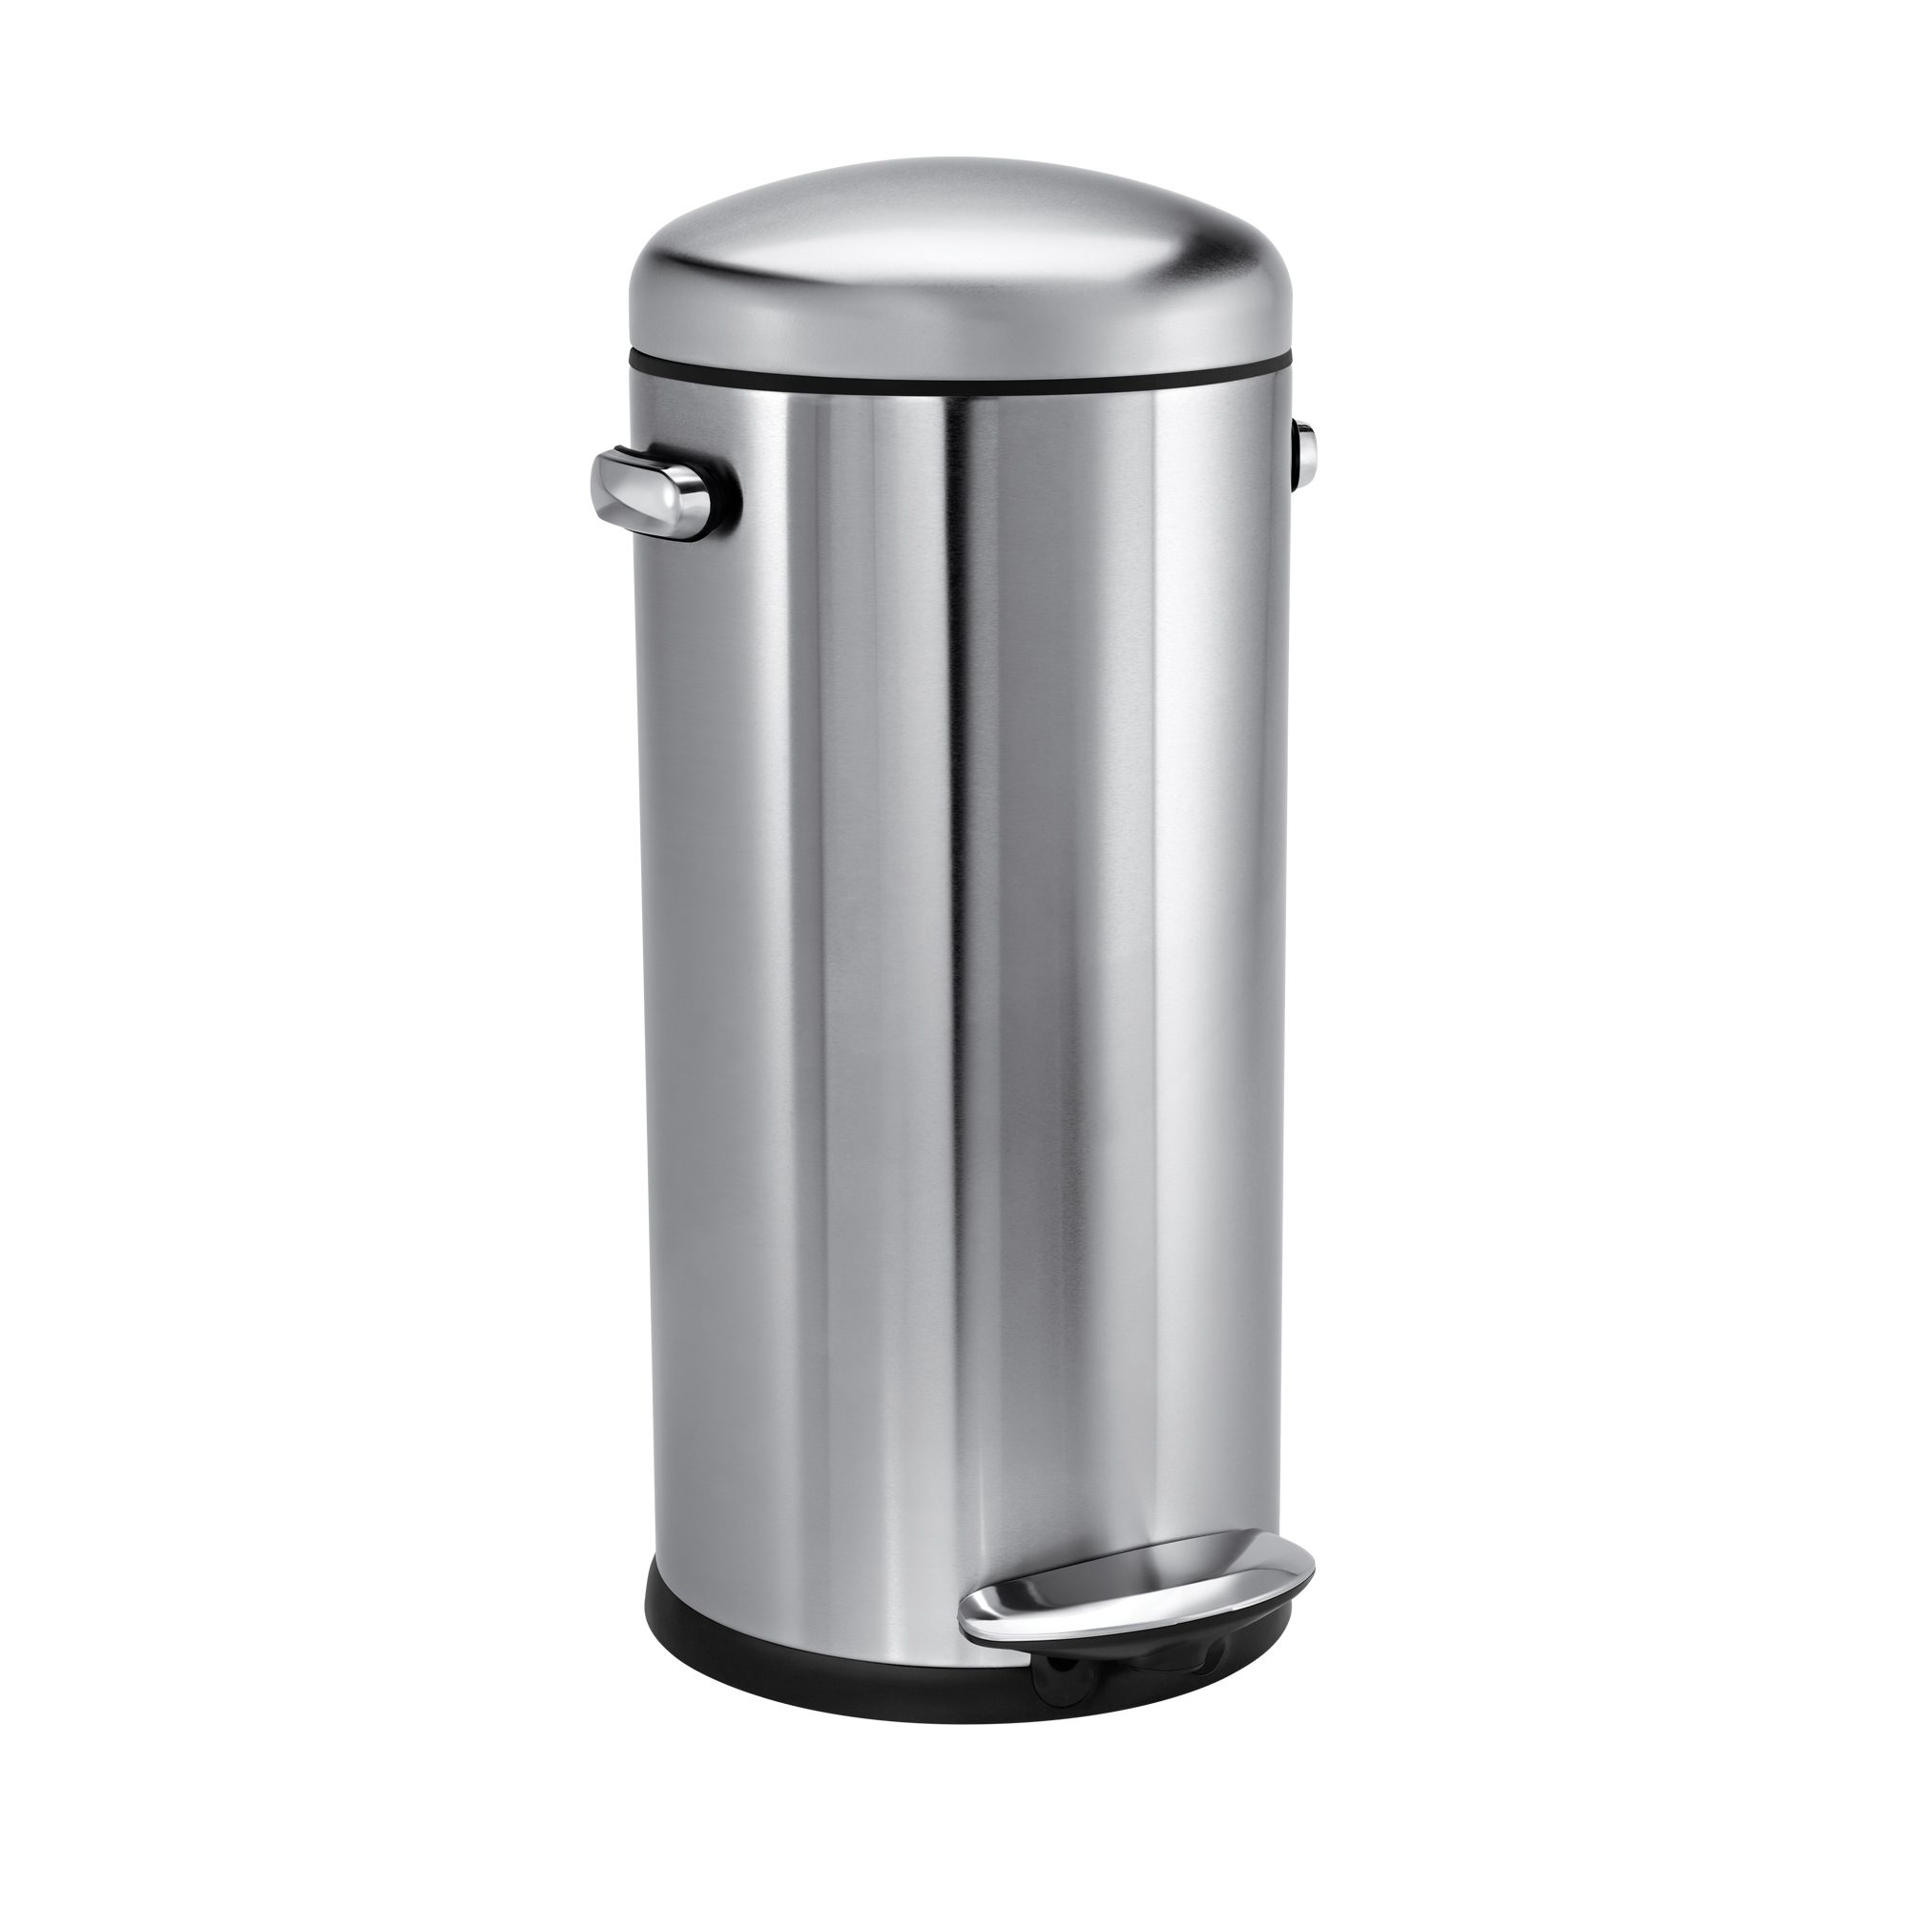 Round retro bin, chrome